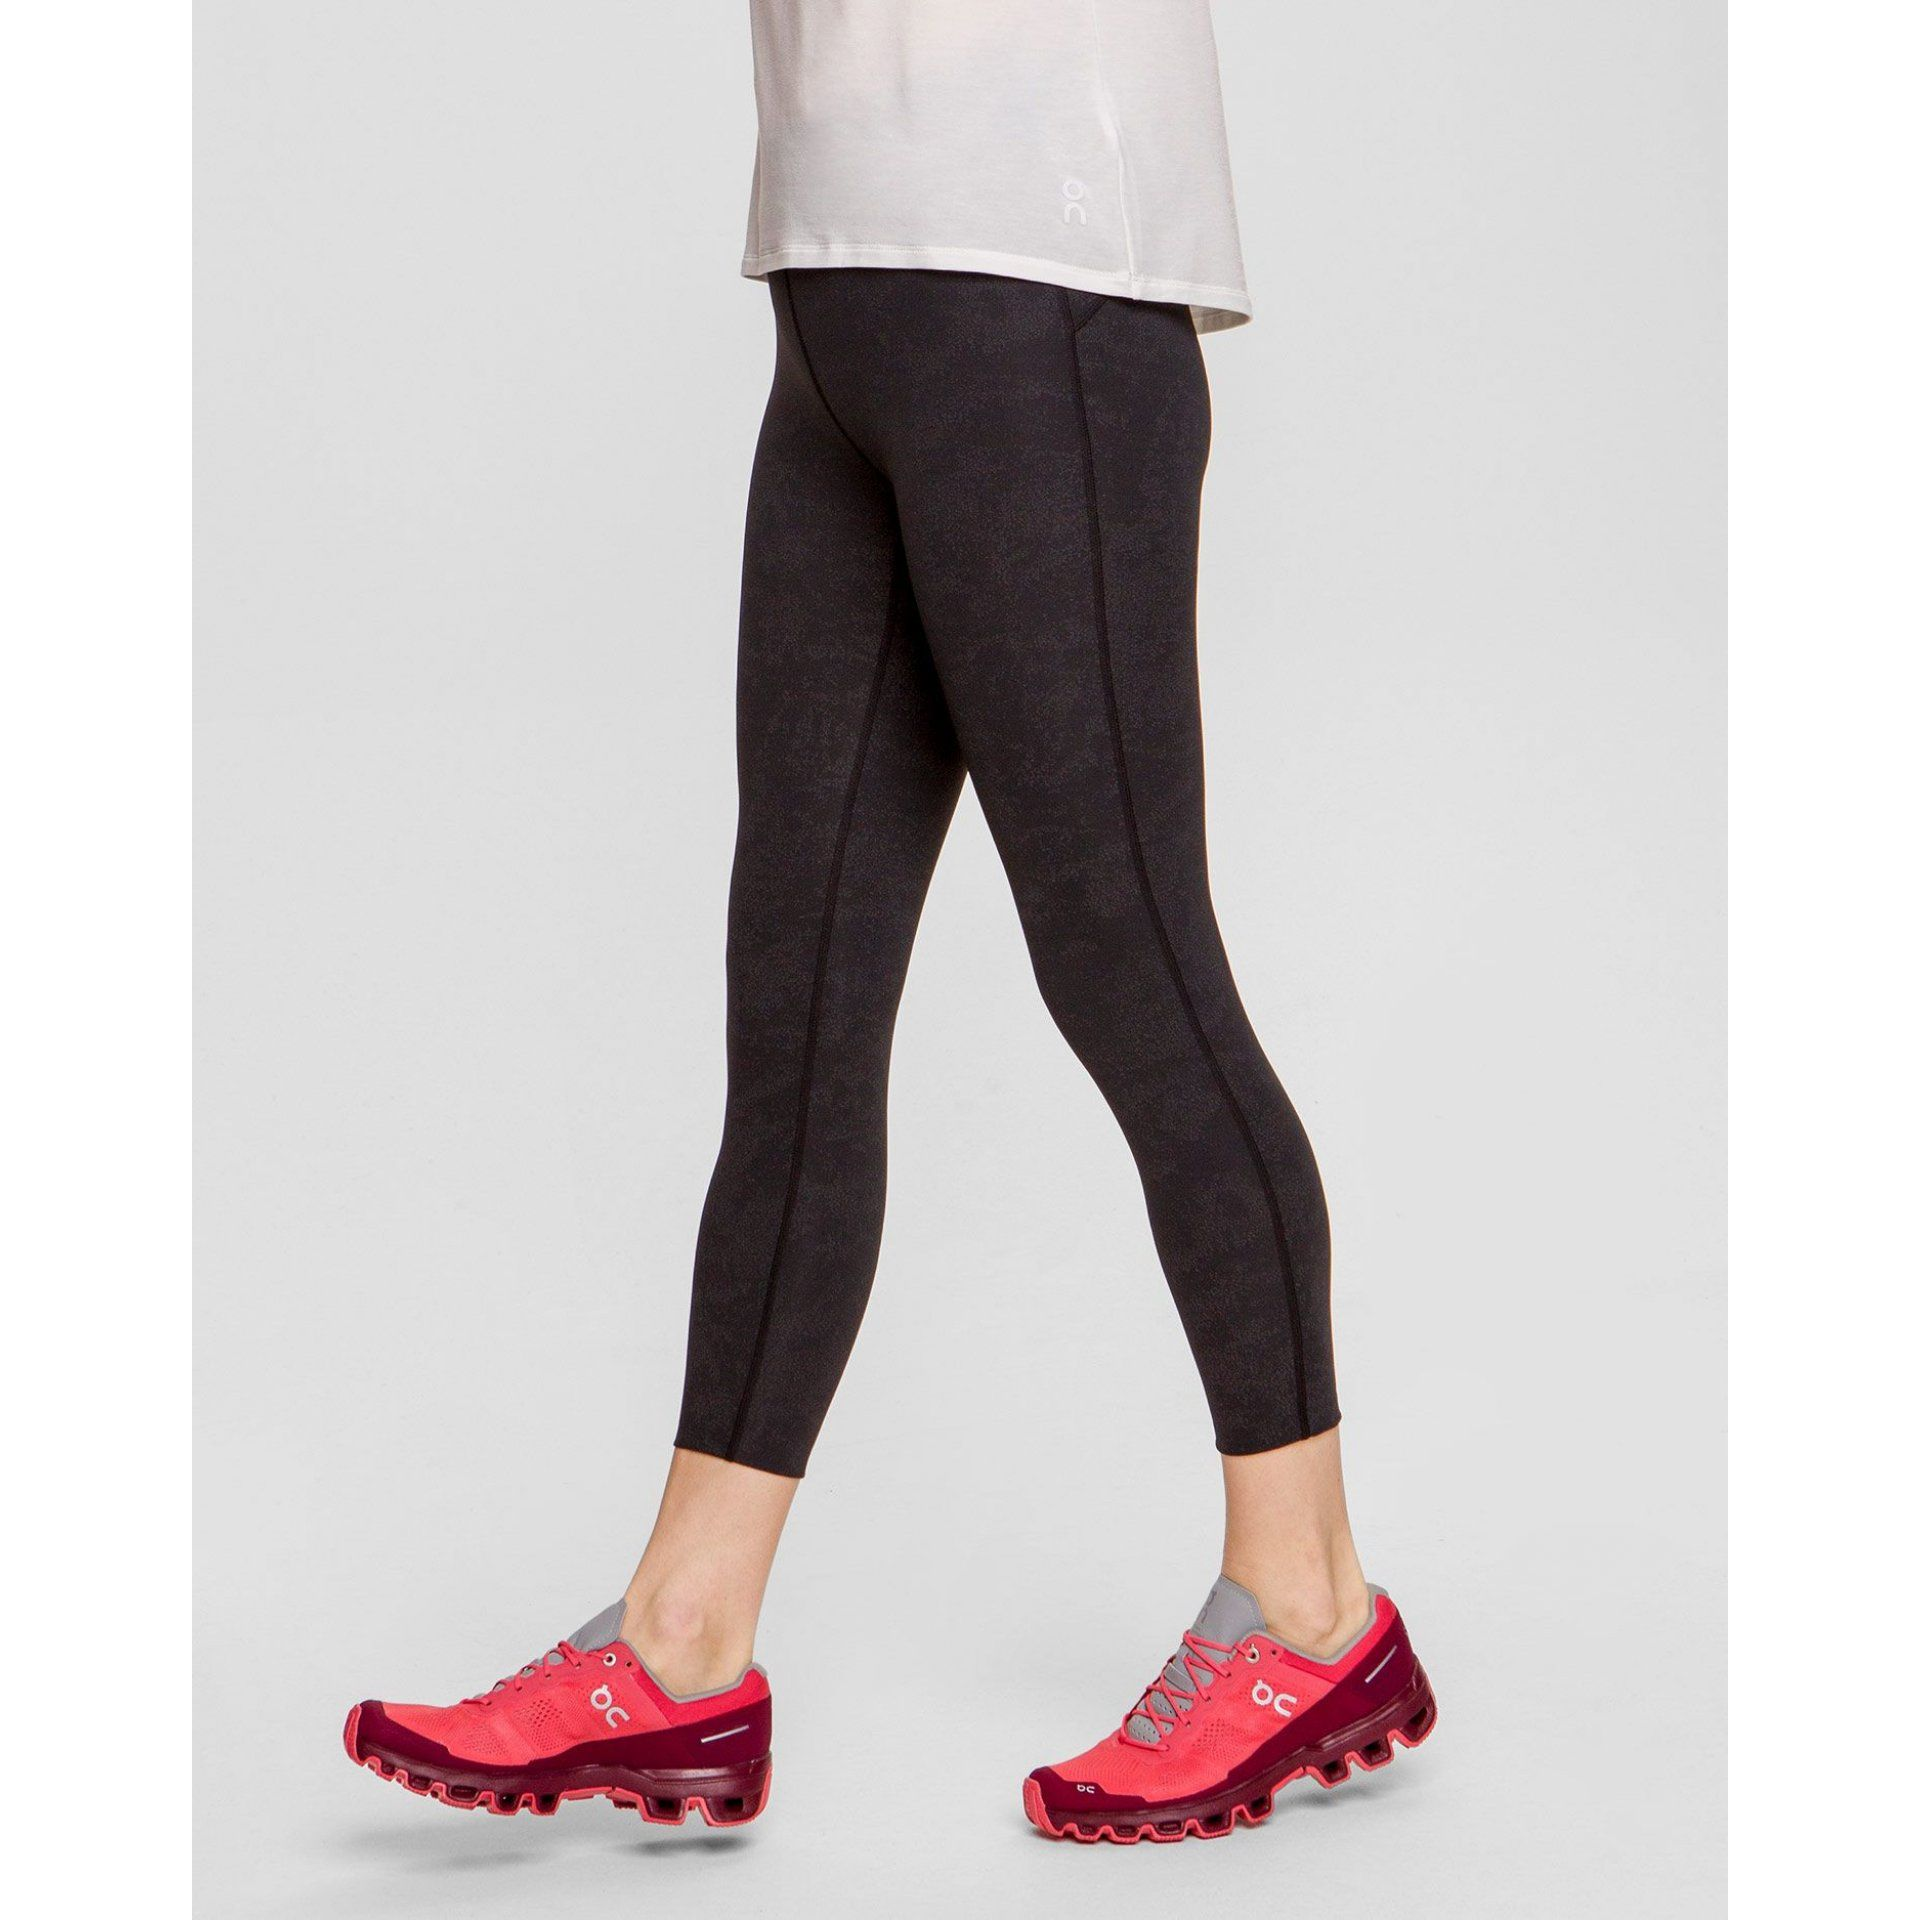 BUTY DO BIEGANIA ON RUNNING CLOUDVENTURE W CORAL|MULBERRY 8